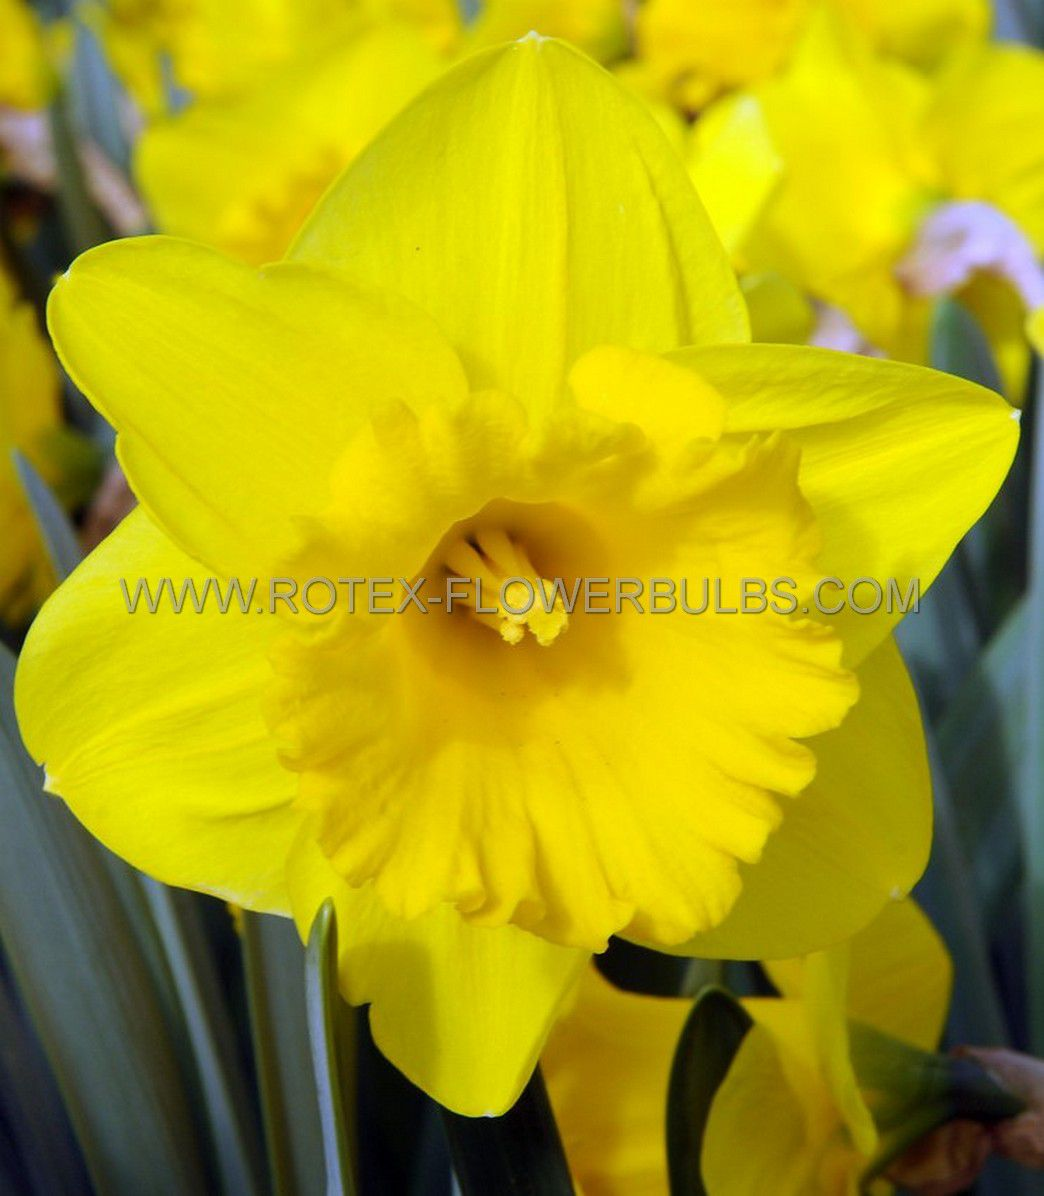 daffodil narcissus trumpet yellow river 1618 150 pplastic tray